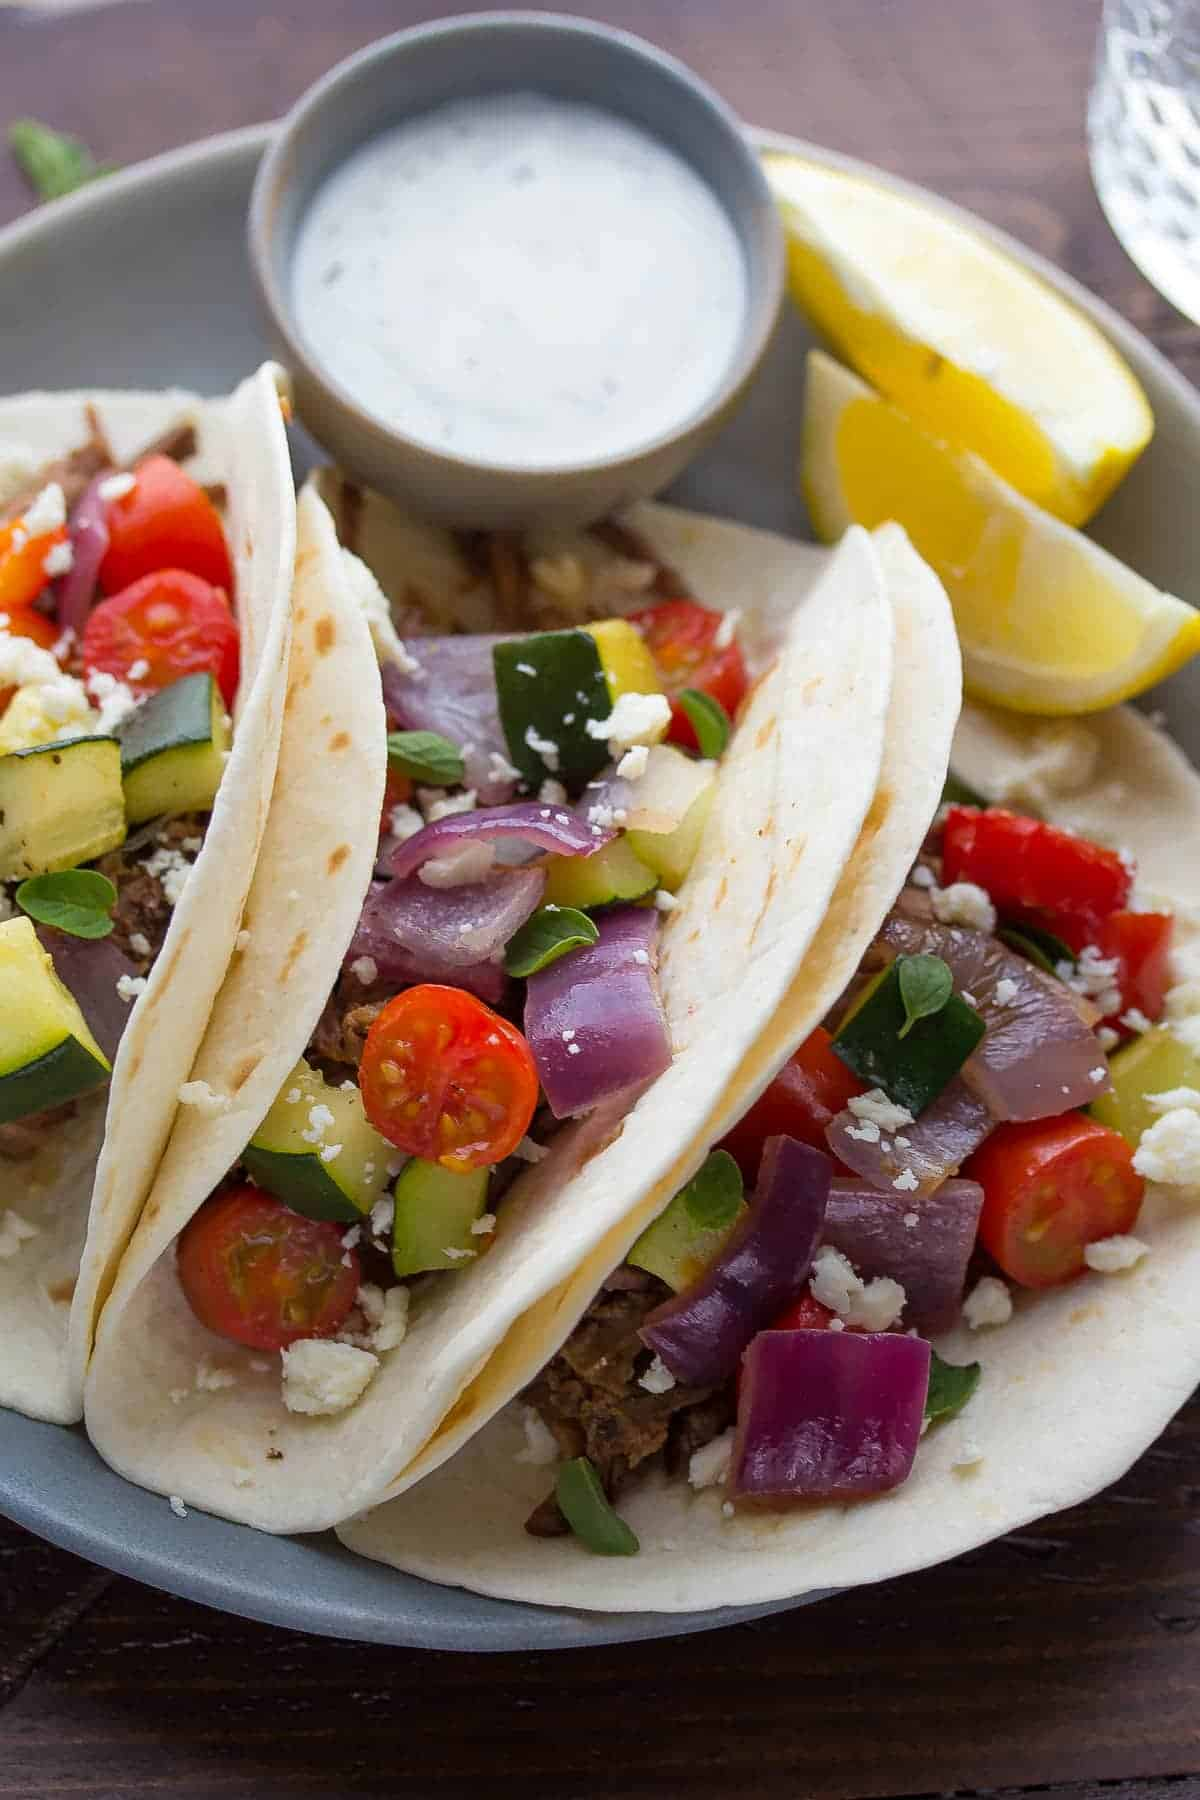 Slow cooker beef tacos with roasted vegetables and feta cheese! Easy to make ahead and best served with tzatziki.